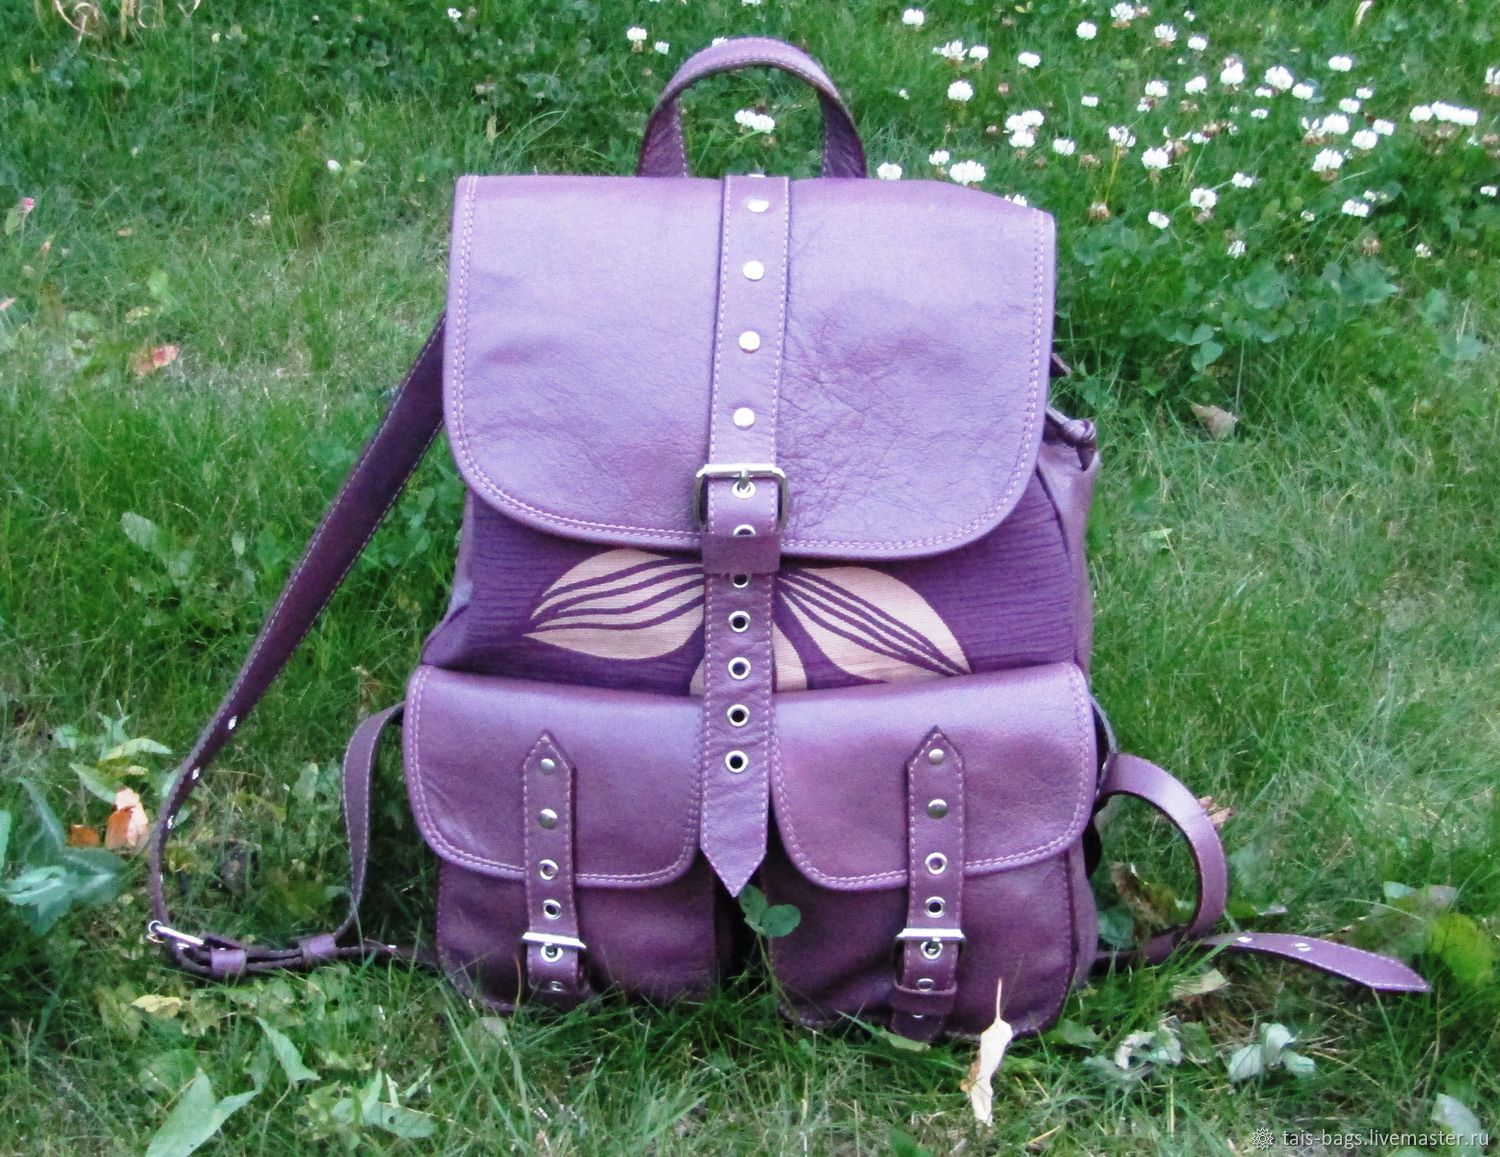 Fantasy backpack made of genuine leather and plum colored textiles, Backpacks, Izhevsk,  Фото №1